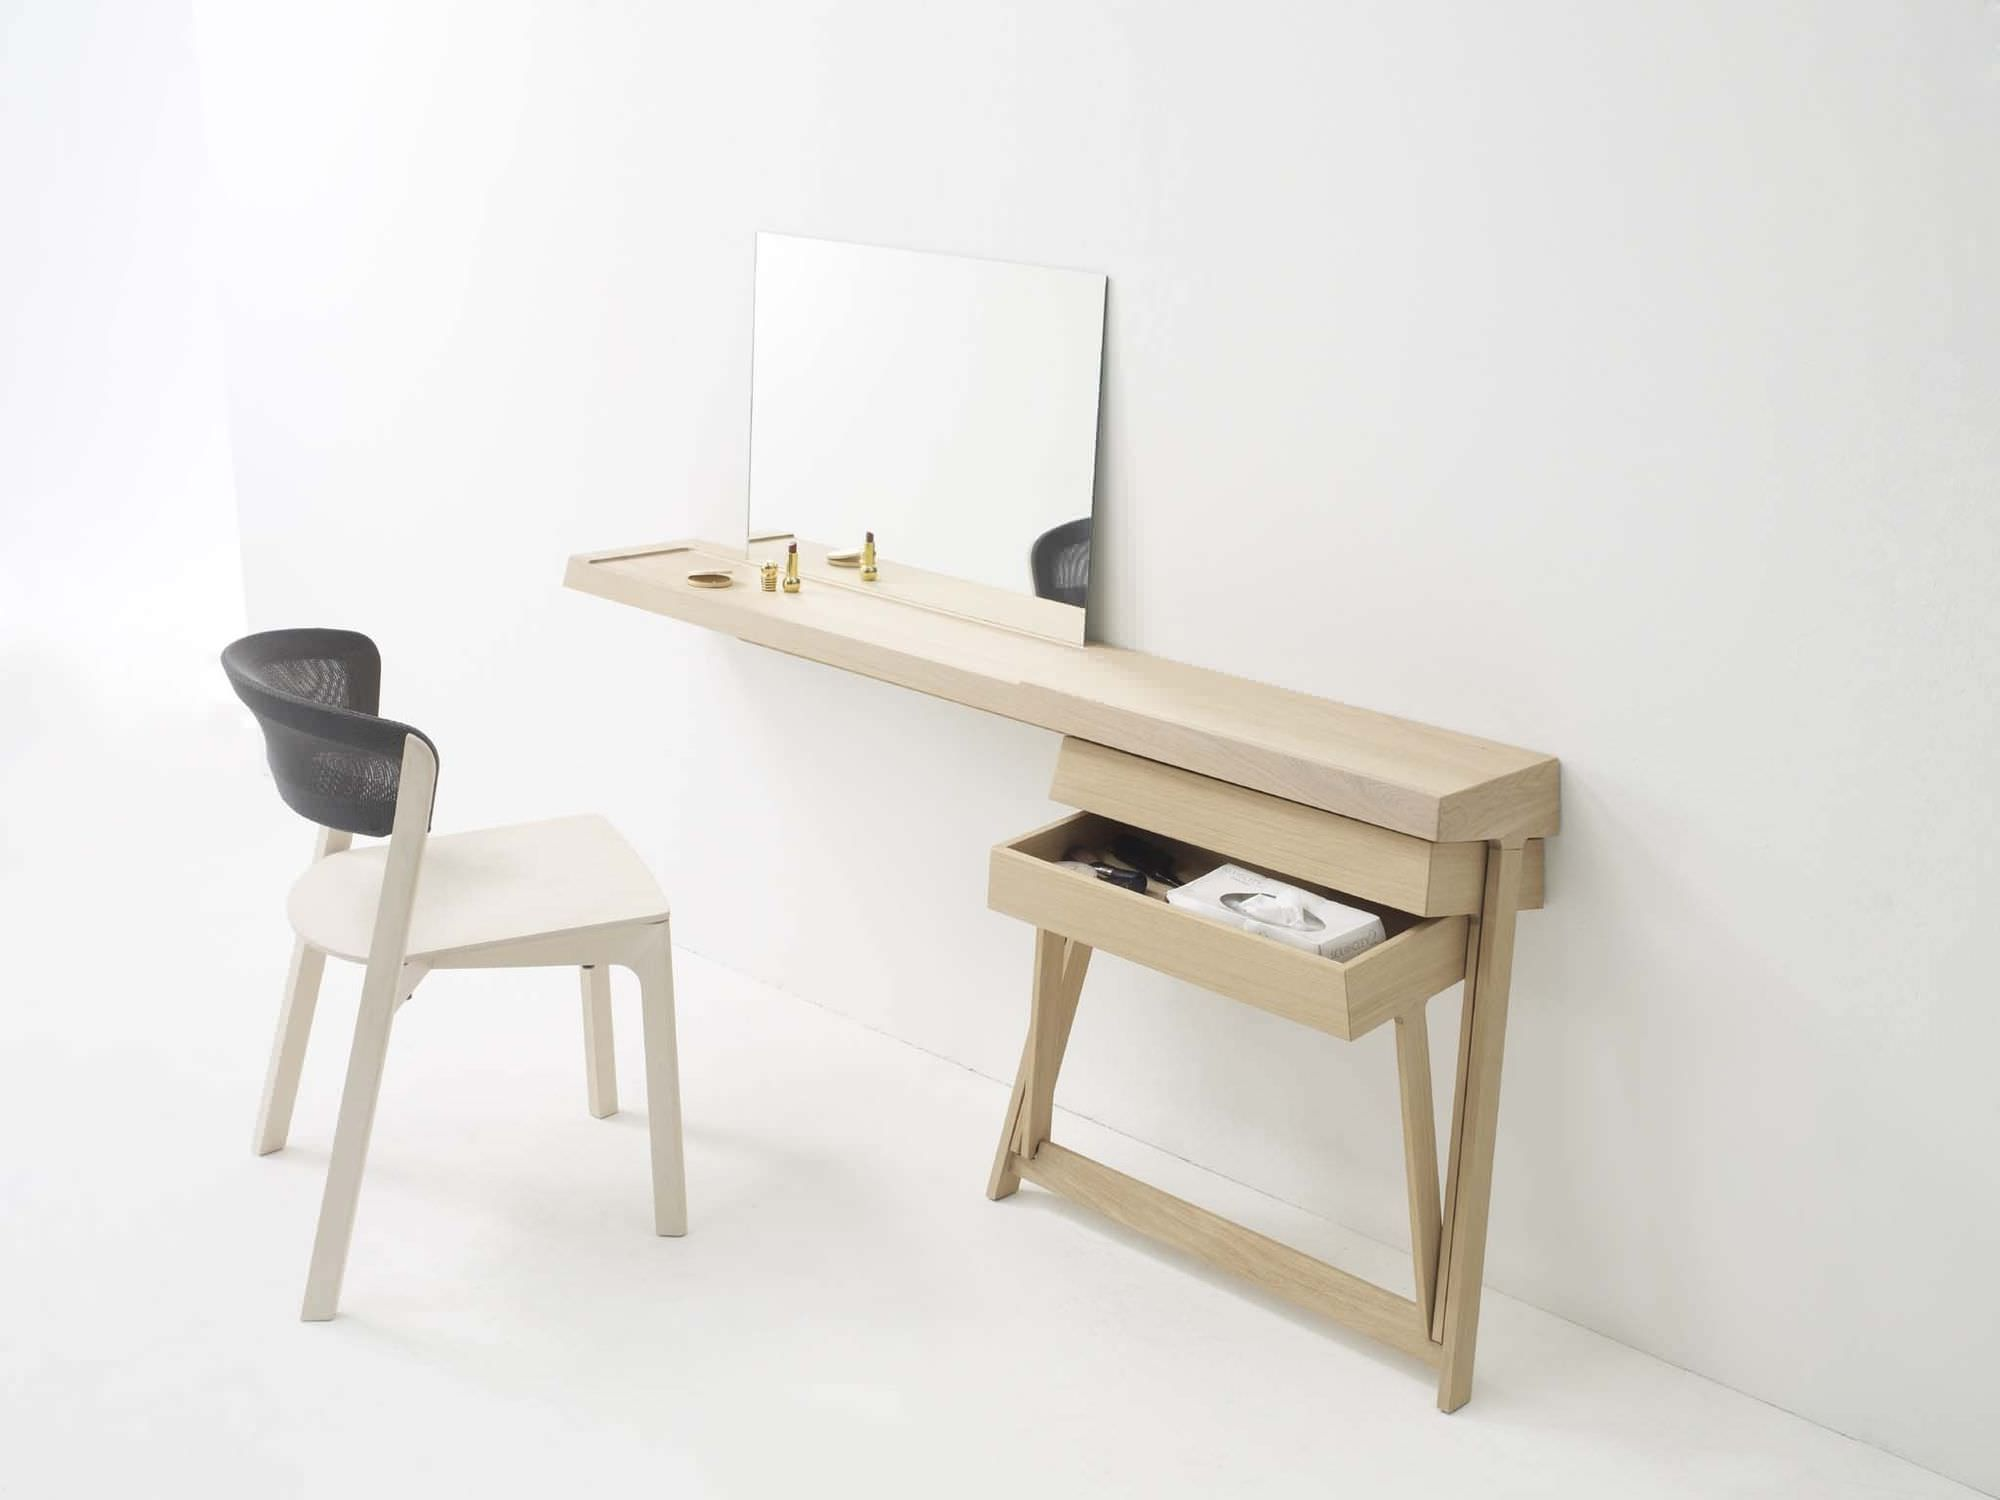 Wall mounted dressing table designs for bedroom - Pleasureable Oak Unfinished Wall Mount Dressing Tables With Storage And Square Mirror Added White Armless Chairs